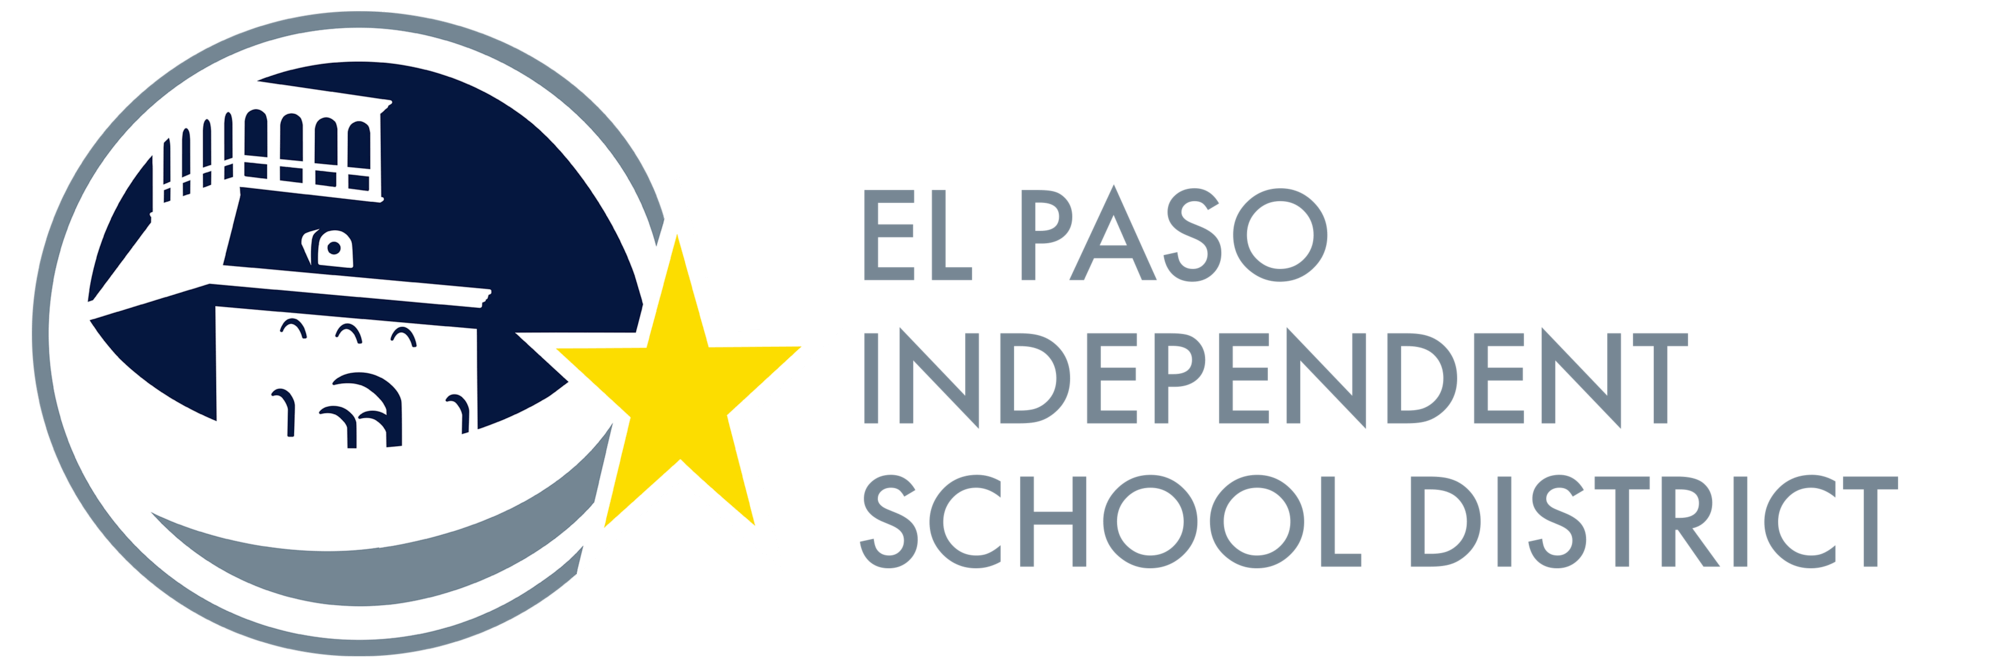 Logo for El Paso Independent School District